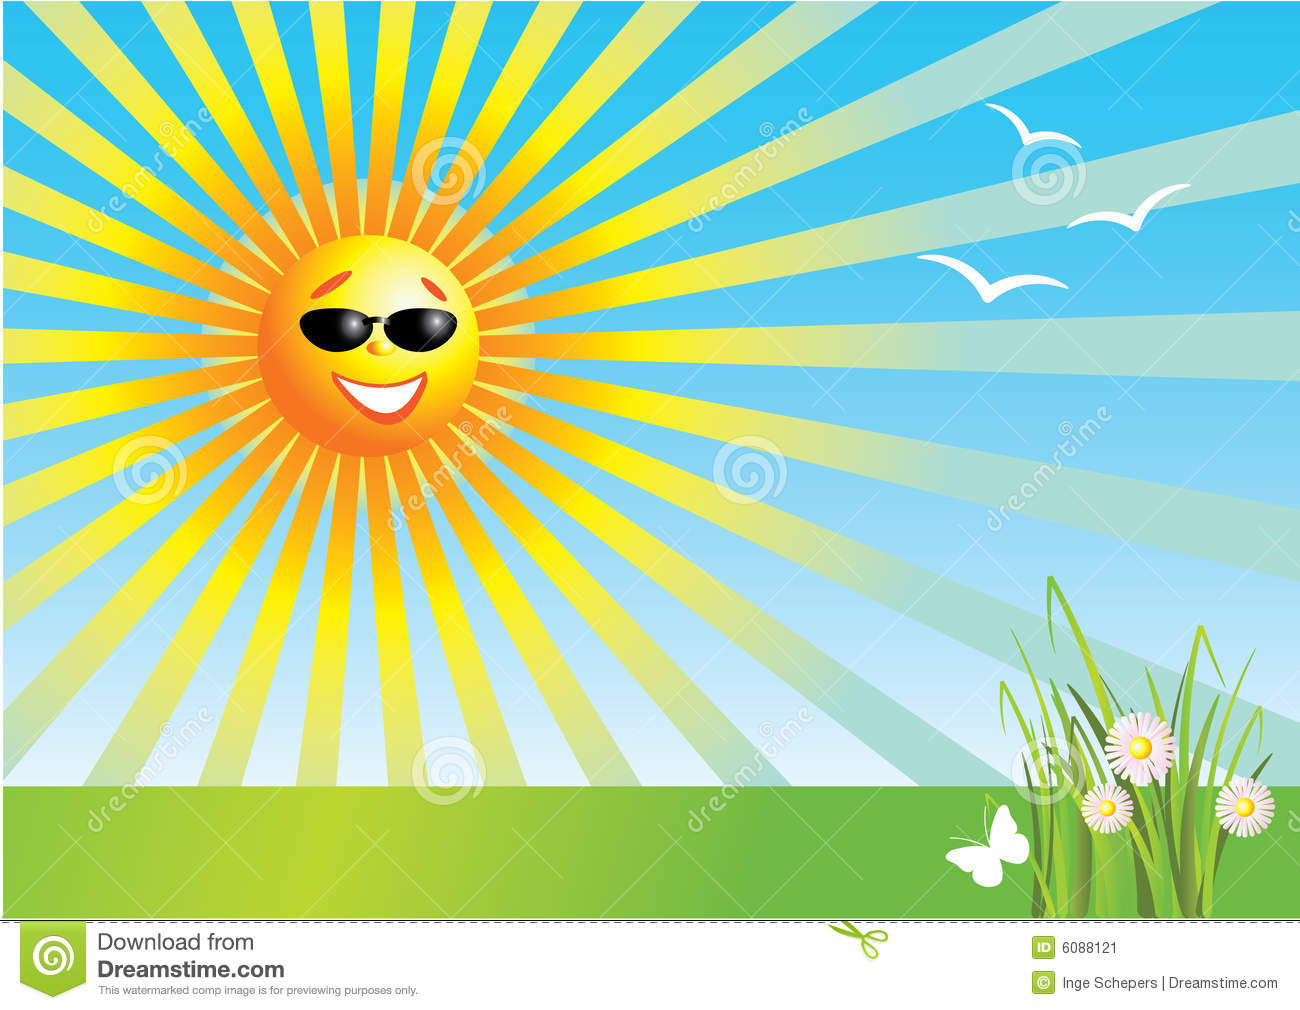 Sunny days clipart image royalty free download Sunny Day Clipart Group with 69+ items image royalty free download